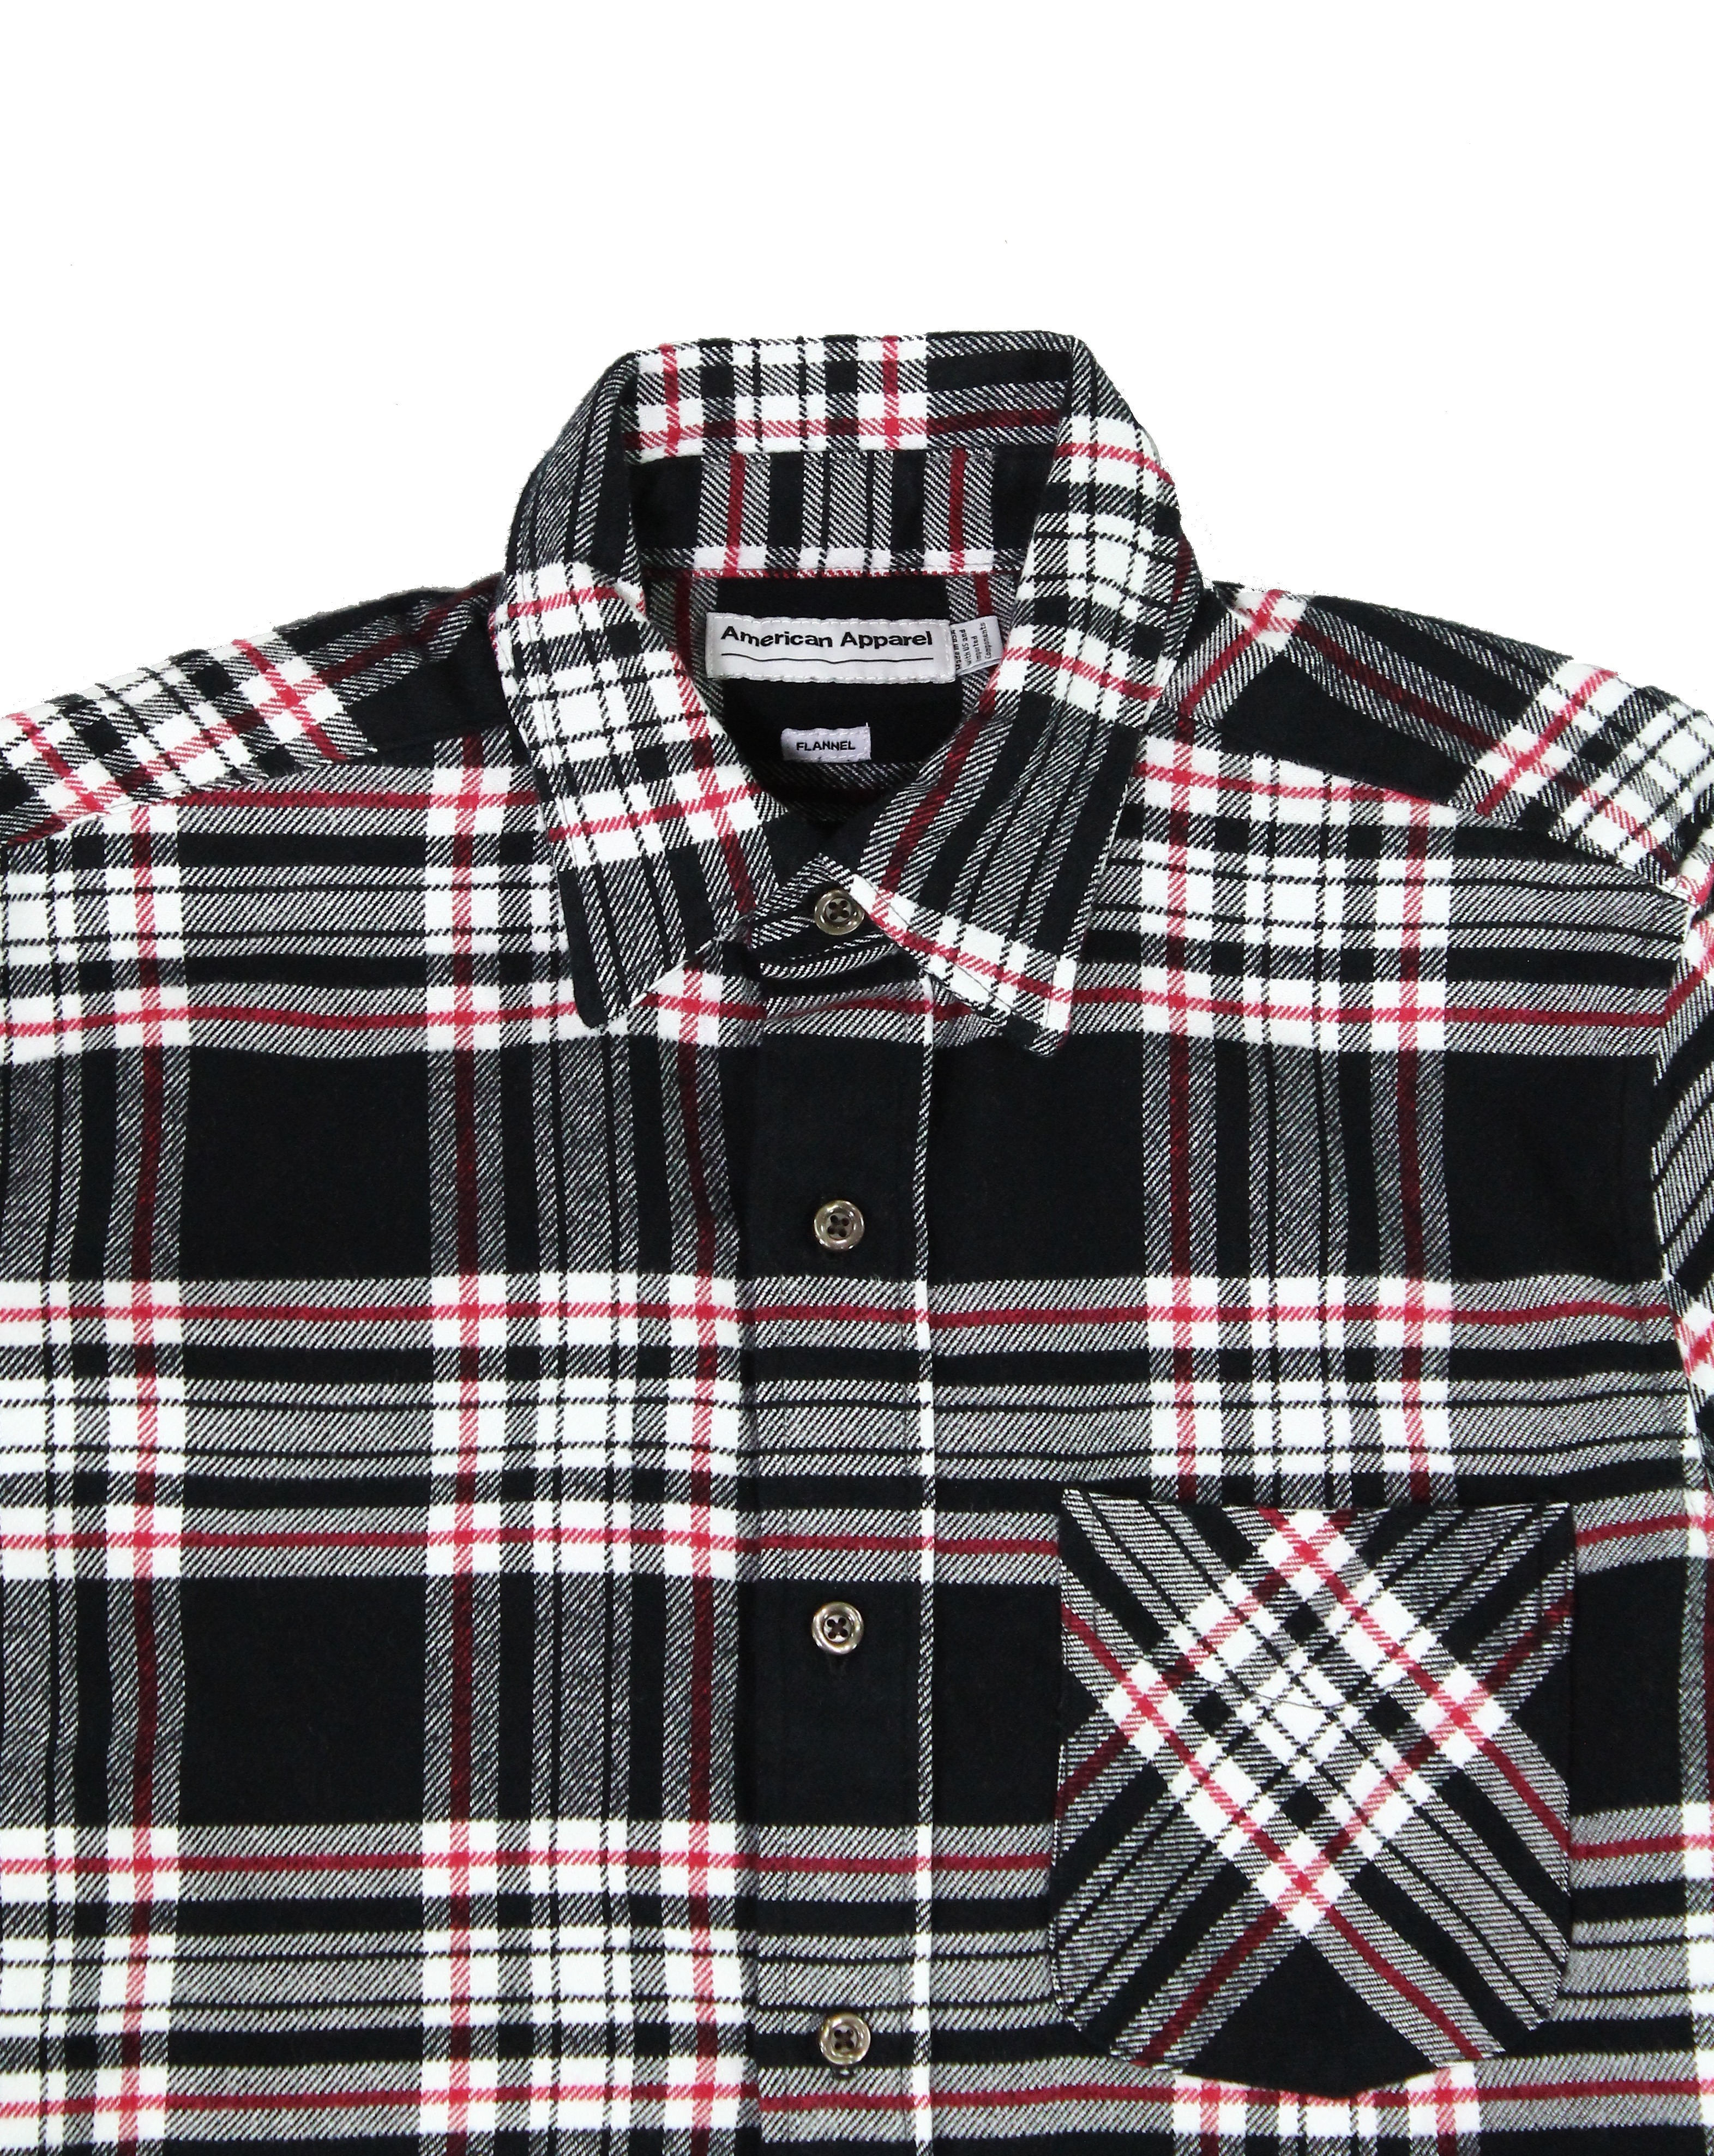 American-Apparel-NEW-Mens-Plaid-Flannel-Lumberjack-Classic-Fit-Button-Down-Shirt thumbnail 3